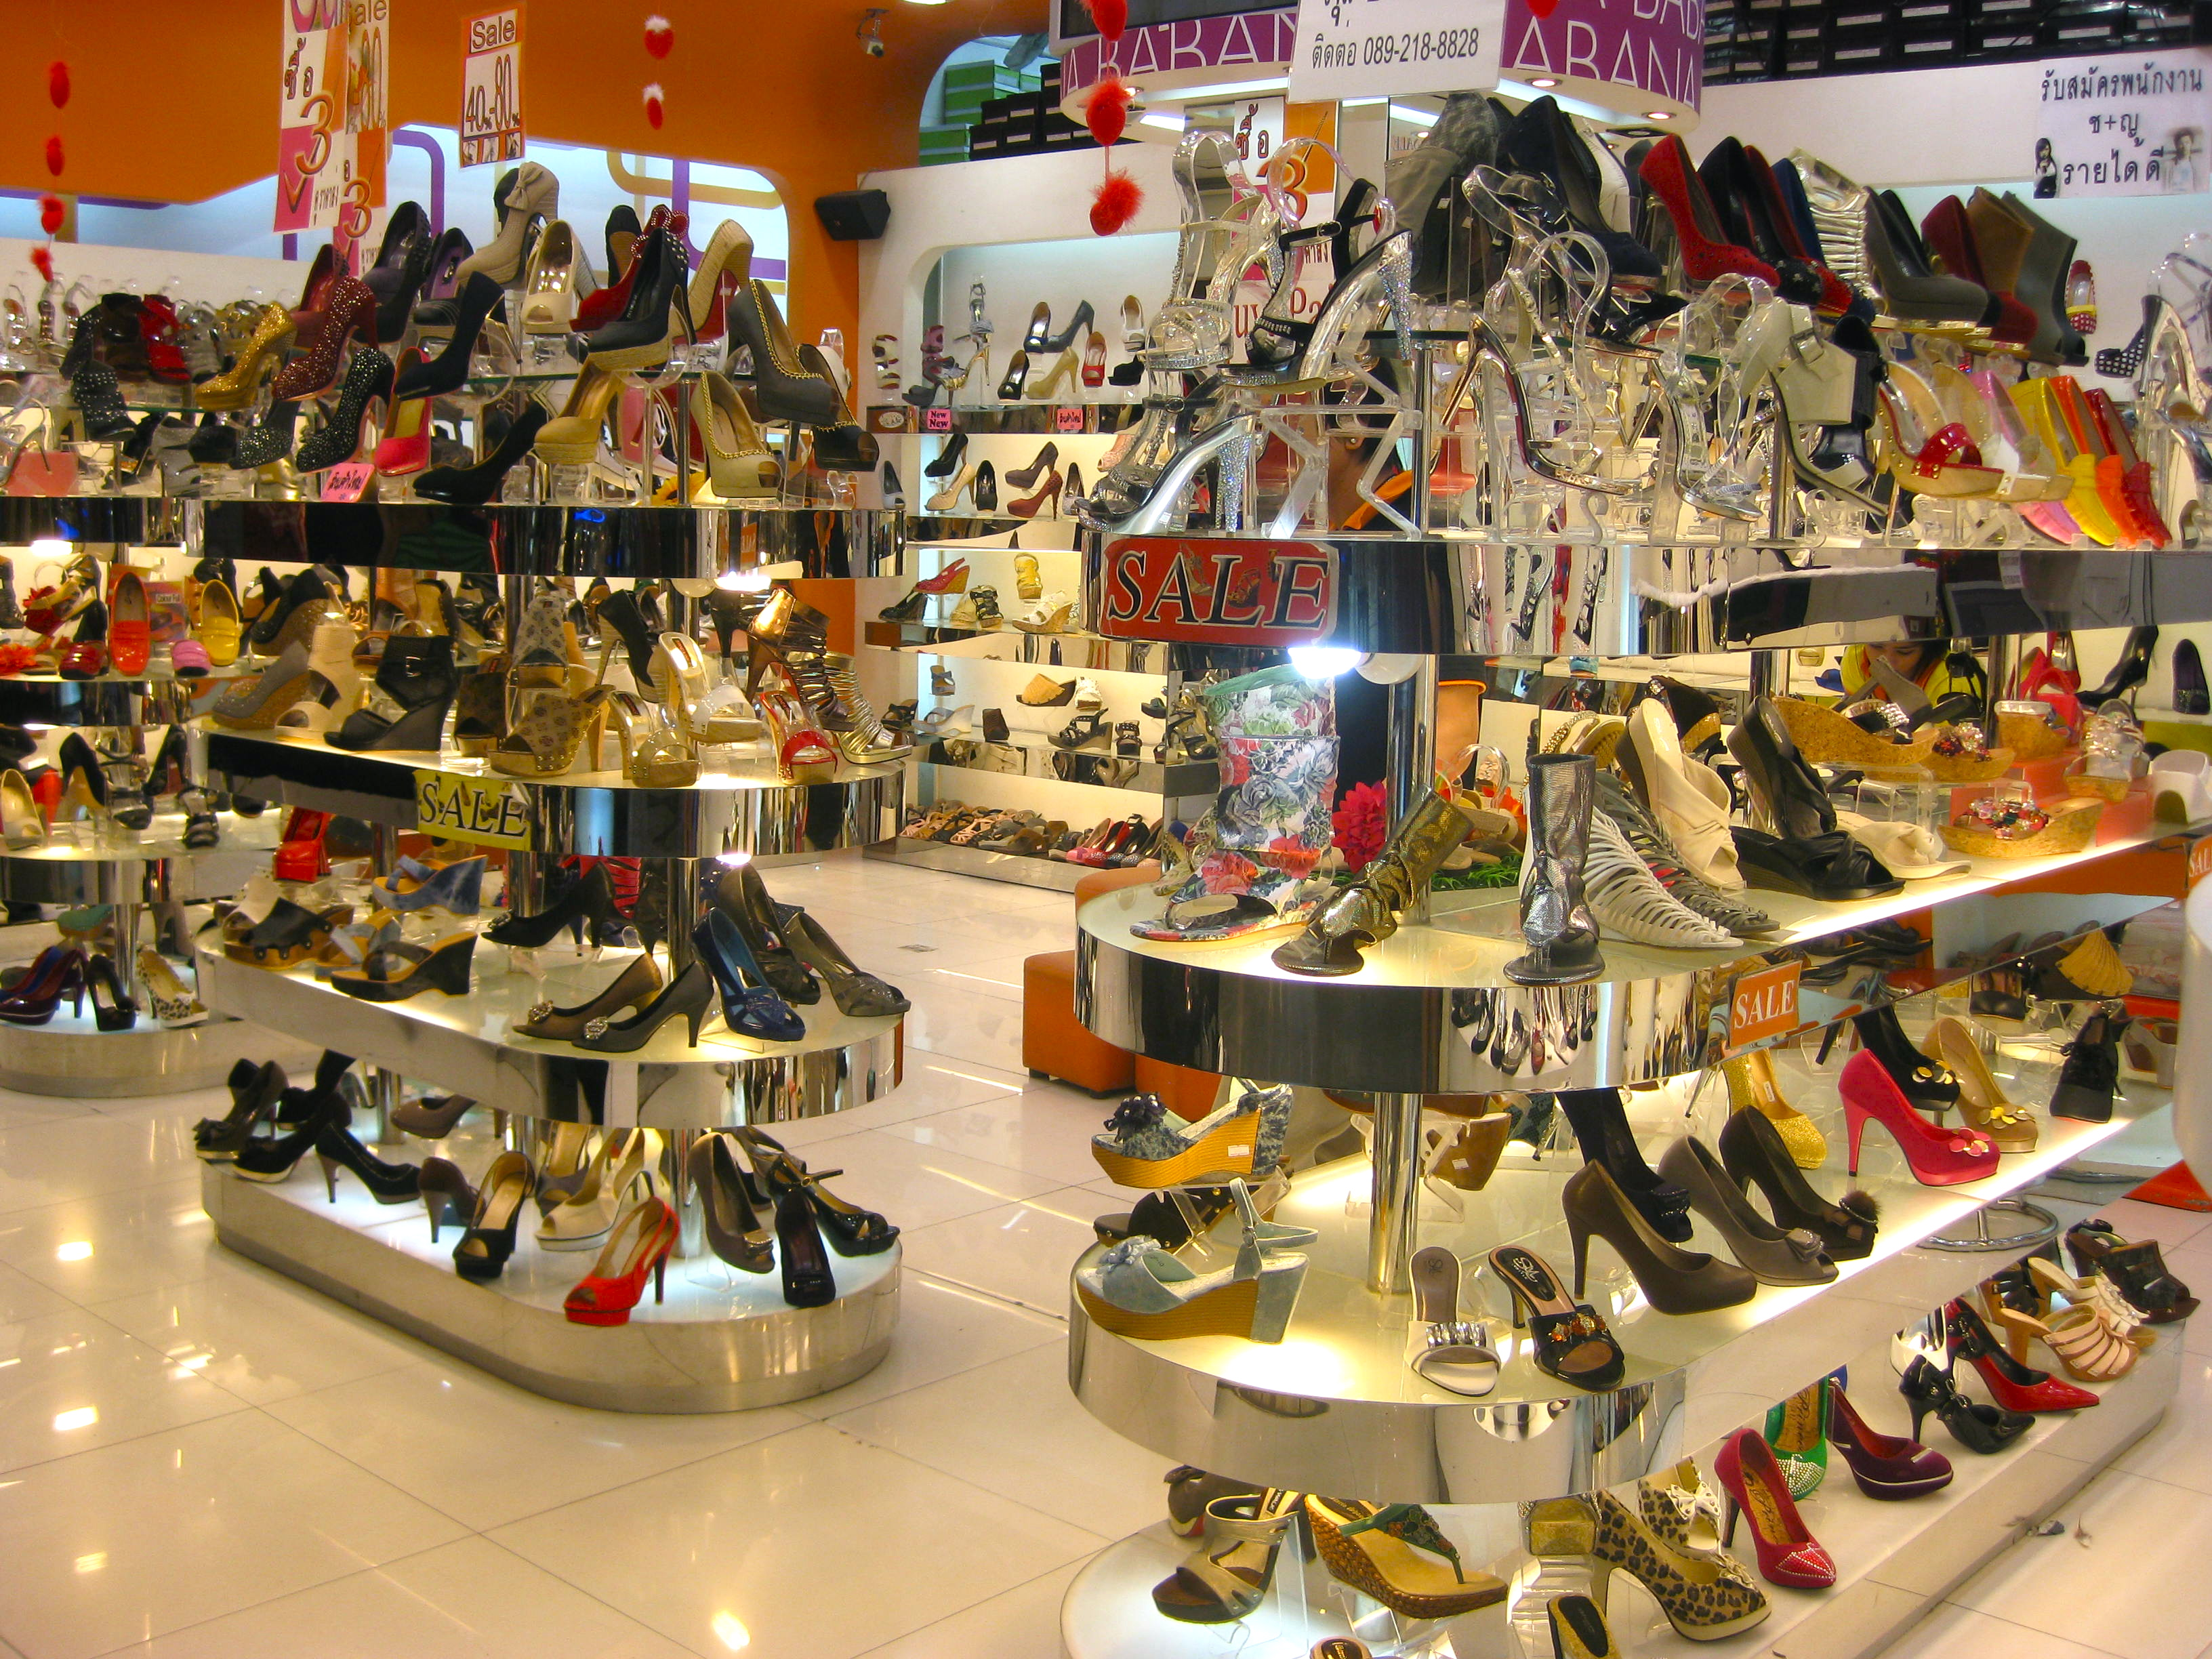 List of shopping malls in Thailand - Wikipedia